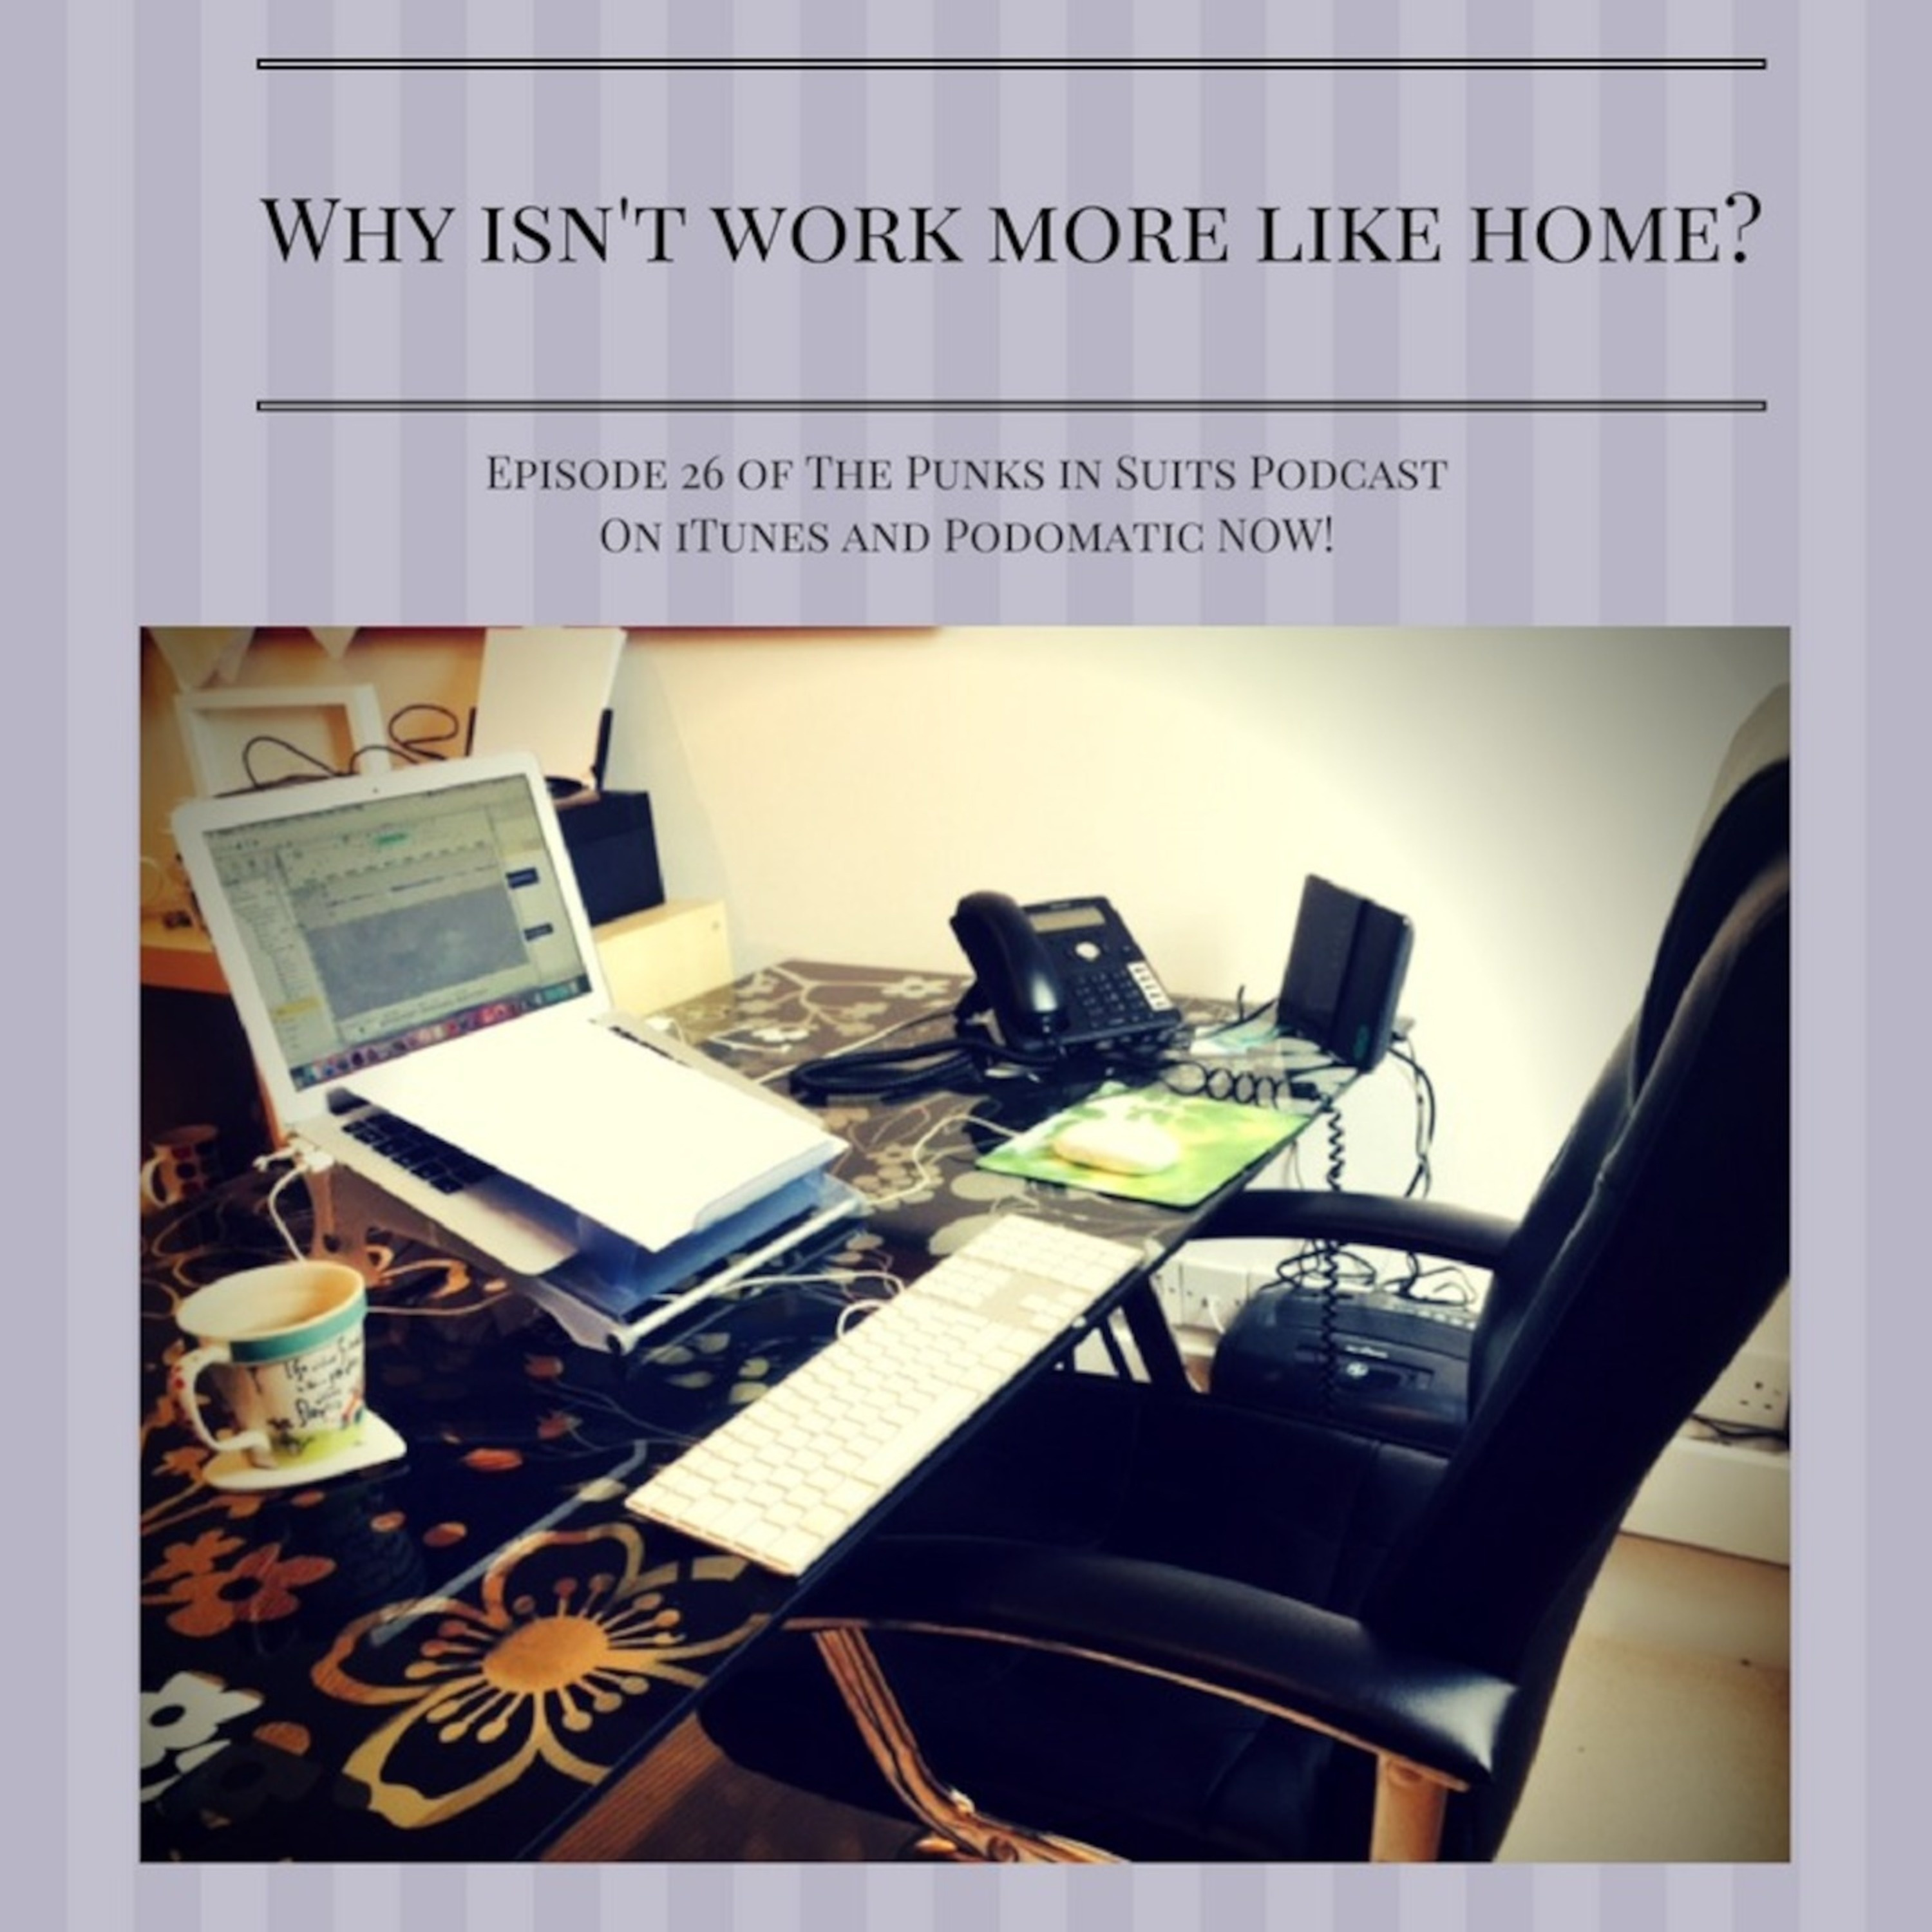 Episode 26: Why isn't work more like home?